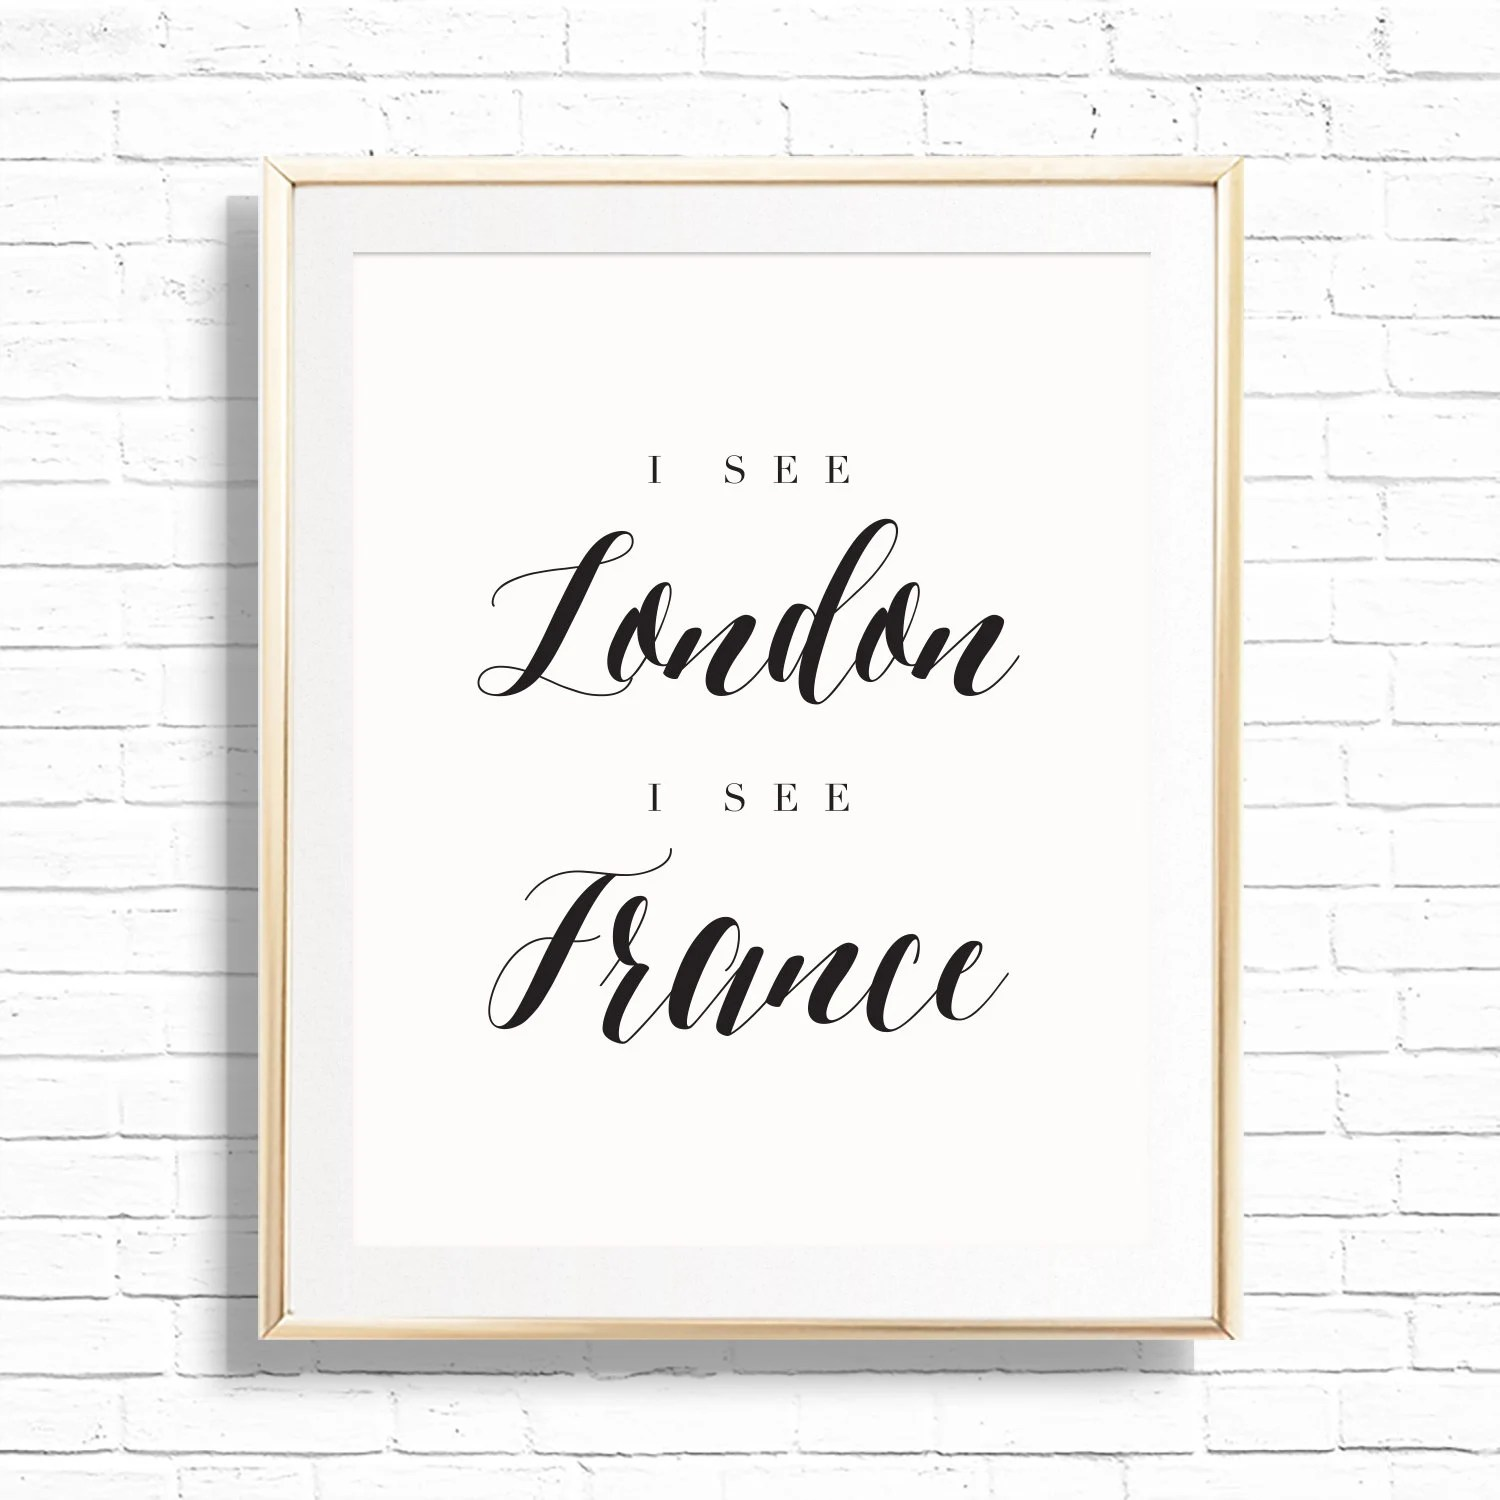 I See London I See France Bathroom Decor Art Print Printable 8x10 Funny Half Bath And Powder Room Sign Decor Funny Quote Print By Prim Popping Catch My Party